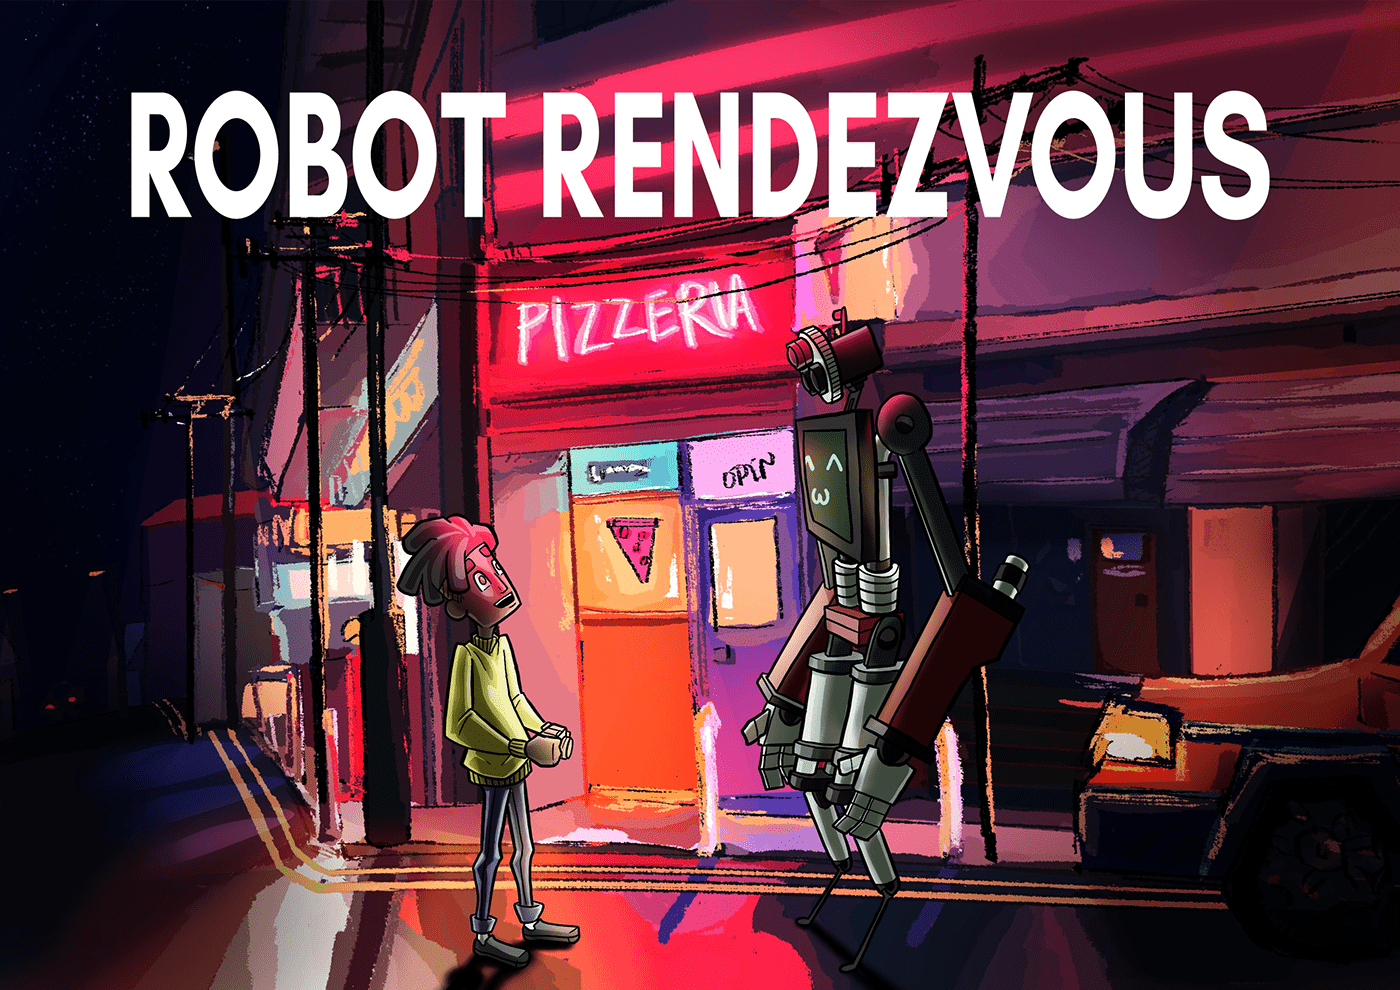 3d animation Animated Short concept art Film   robots Character design  Digital Art  Environment design nightscapes Photography